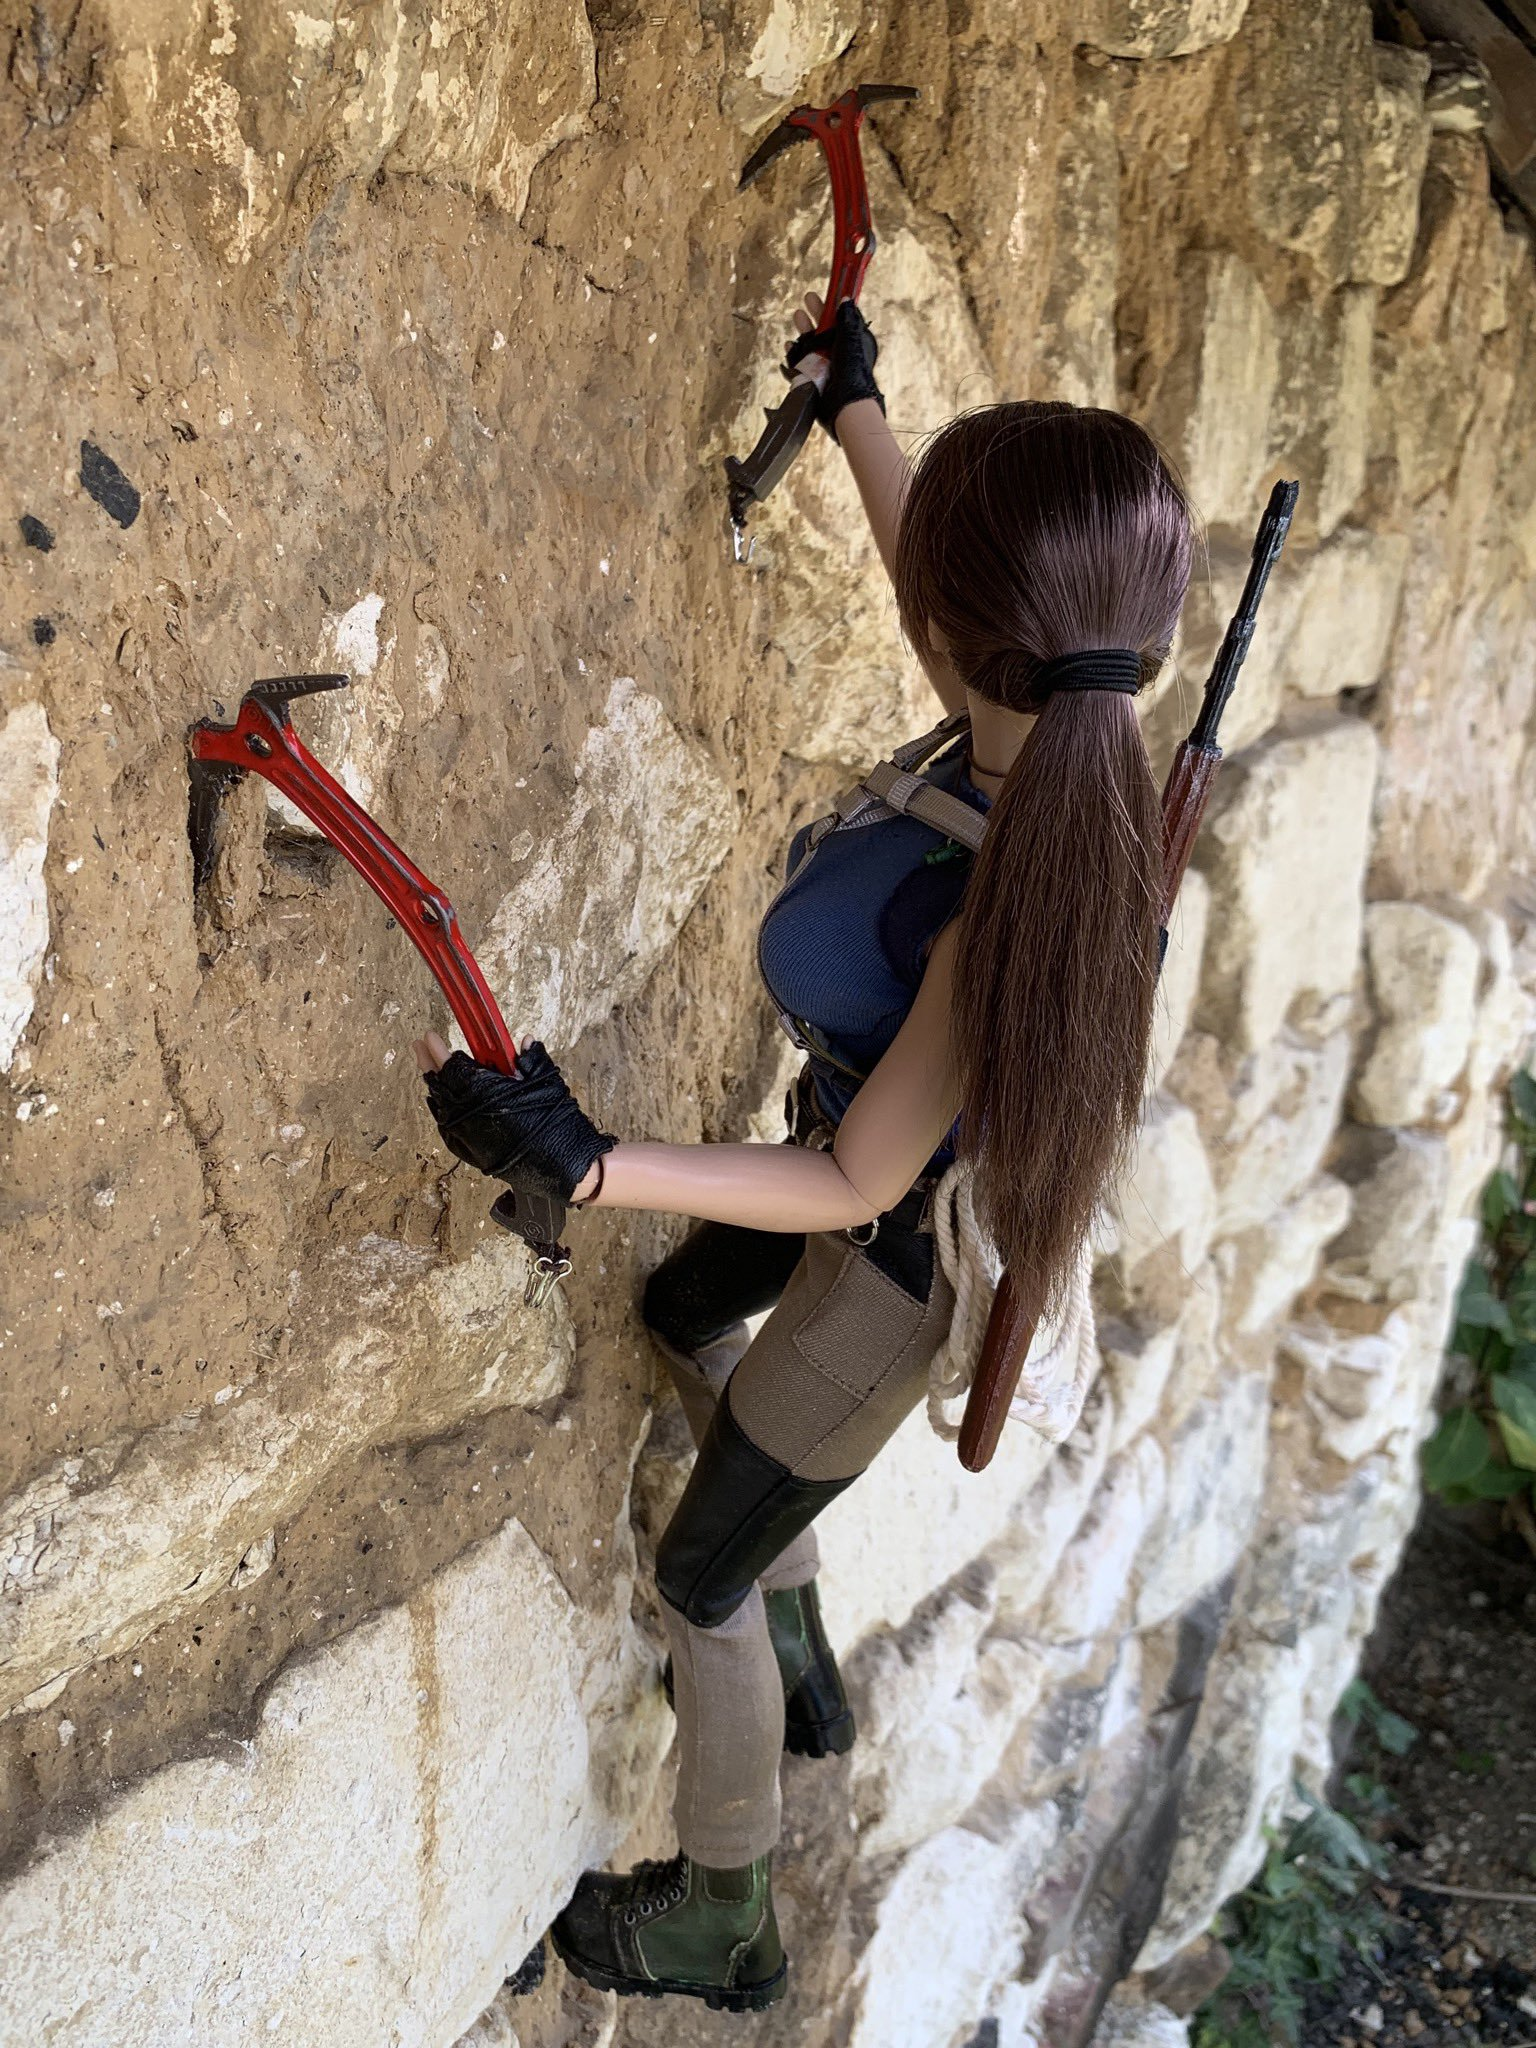 christophe-croft-lara-croft-tonner-doll-12